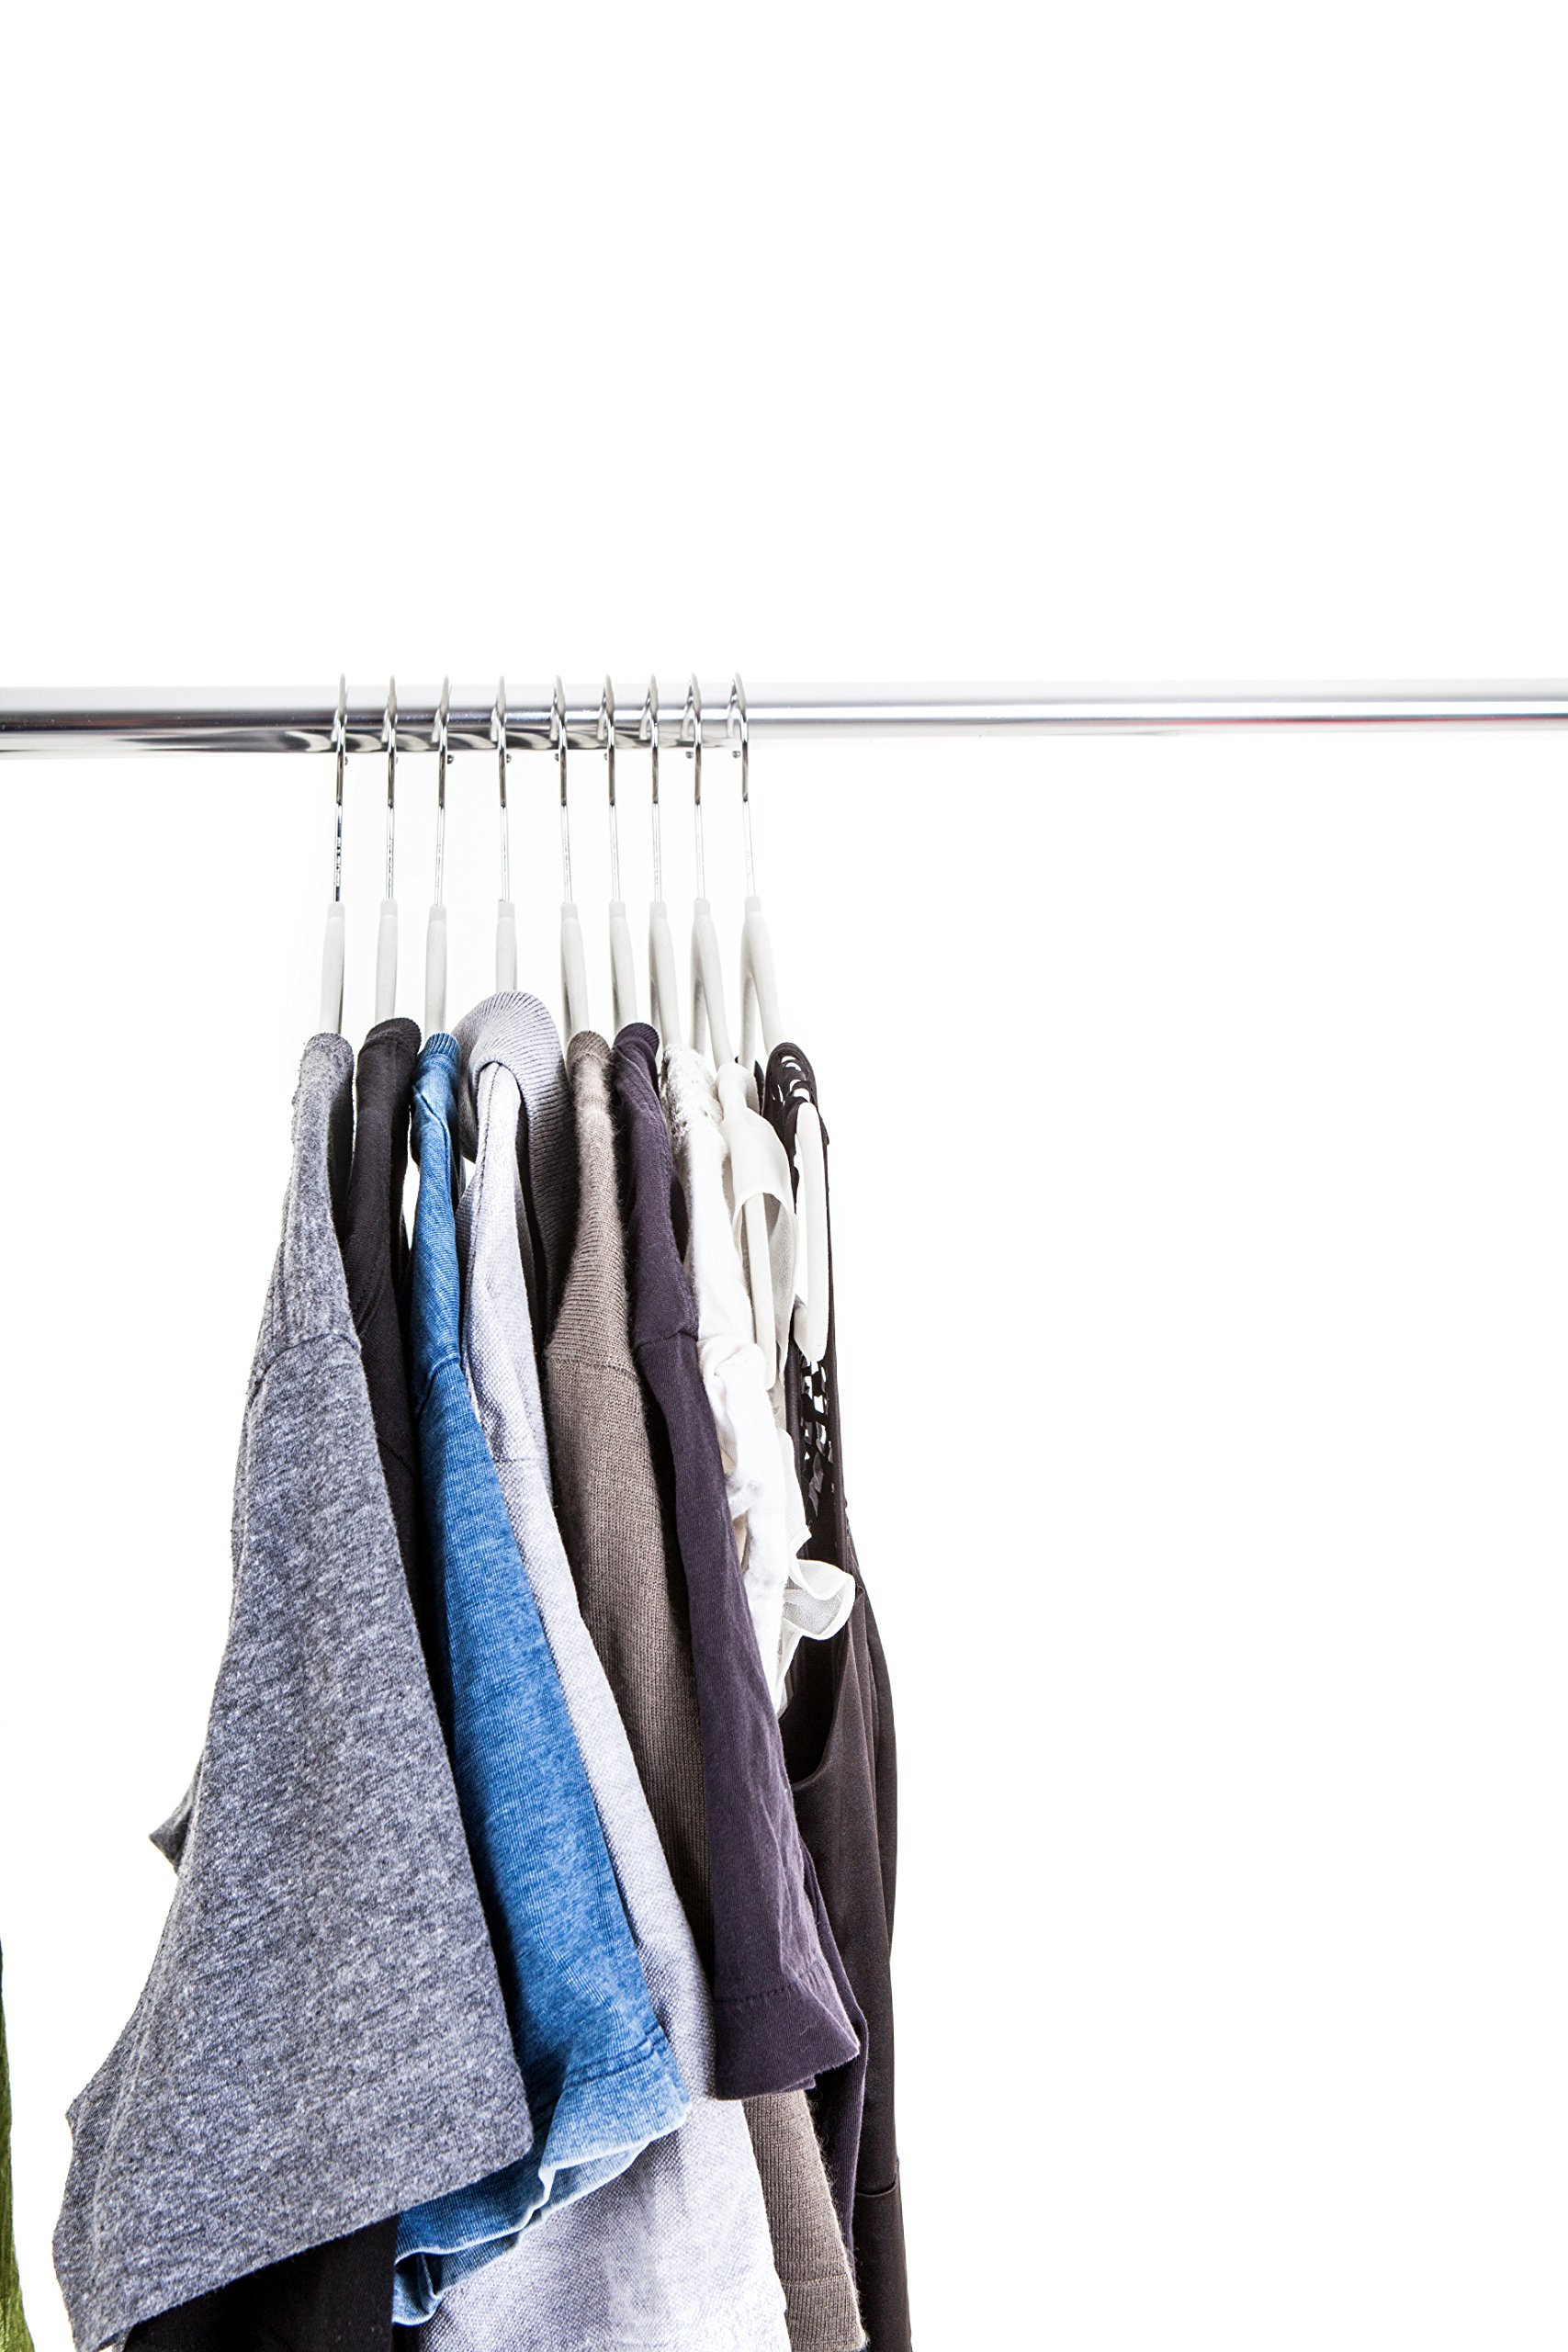 50 pc Premium Quality Off-White Velvet Hangers - Space Saving Thin Profile, Non-slip Padded with Notched Shoulders for Dresses and Blouses â€'' Strong Enough for Coats and Pants